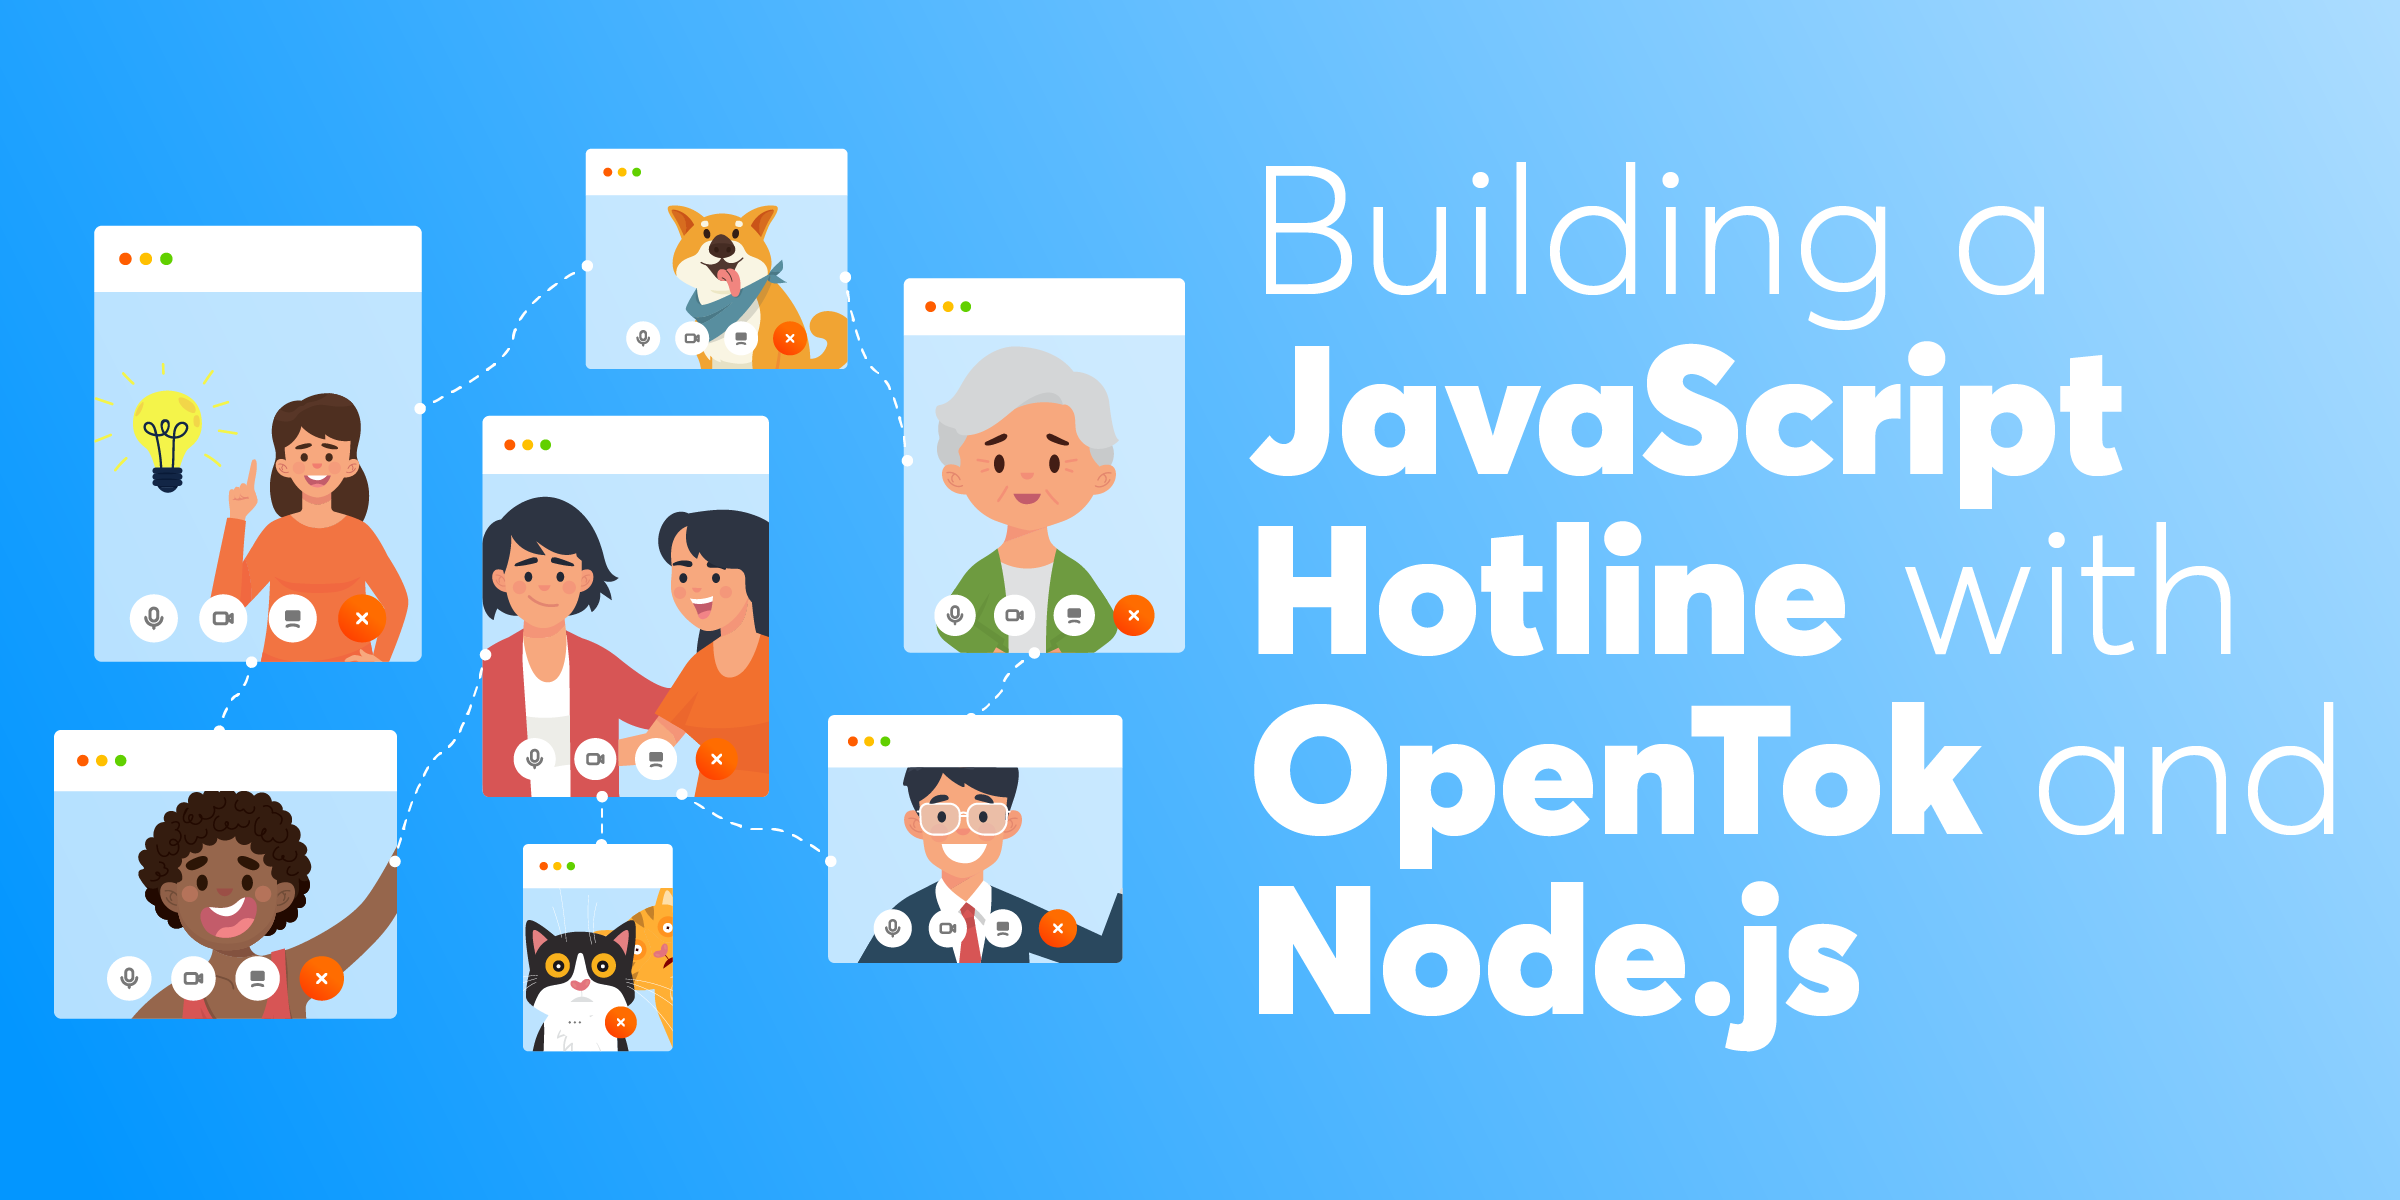 Building a JavaScript Hotline with OpenTok and Node.js